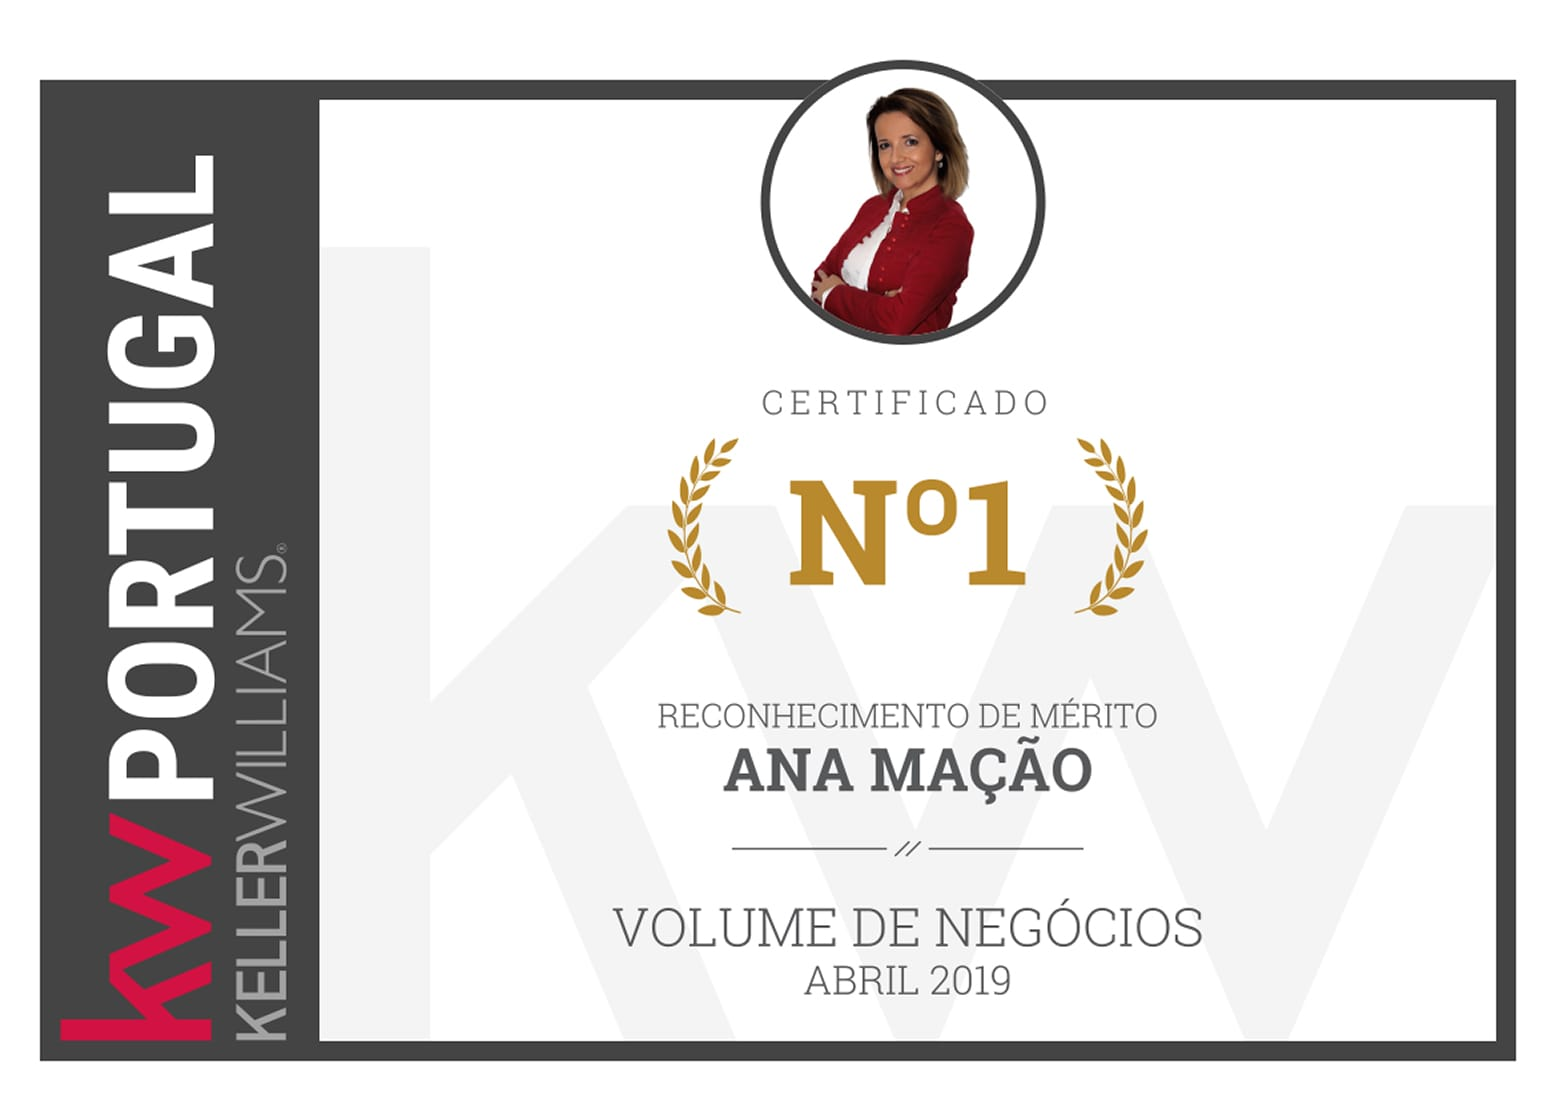 1º Lugar - Top Nacional KW Portugal - Abril 2019